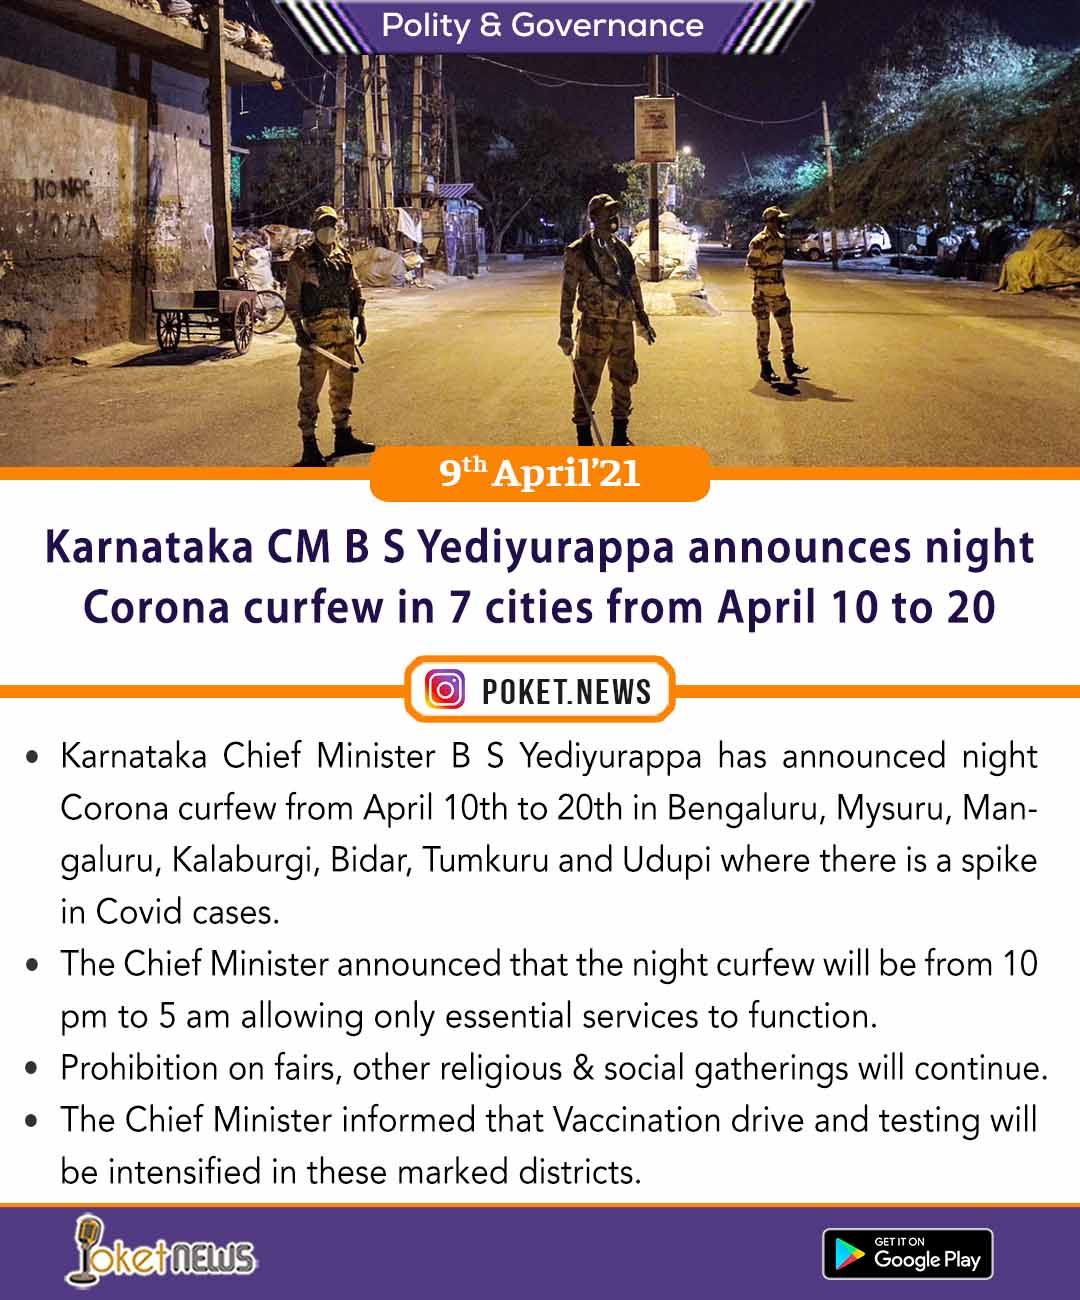 Karnataka CM B S Yediyurappa announces night Corona curfew in 7 cities from April 10 to 20